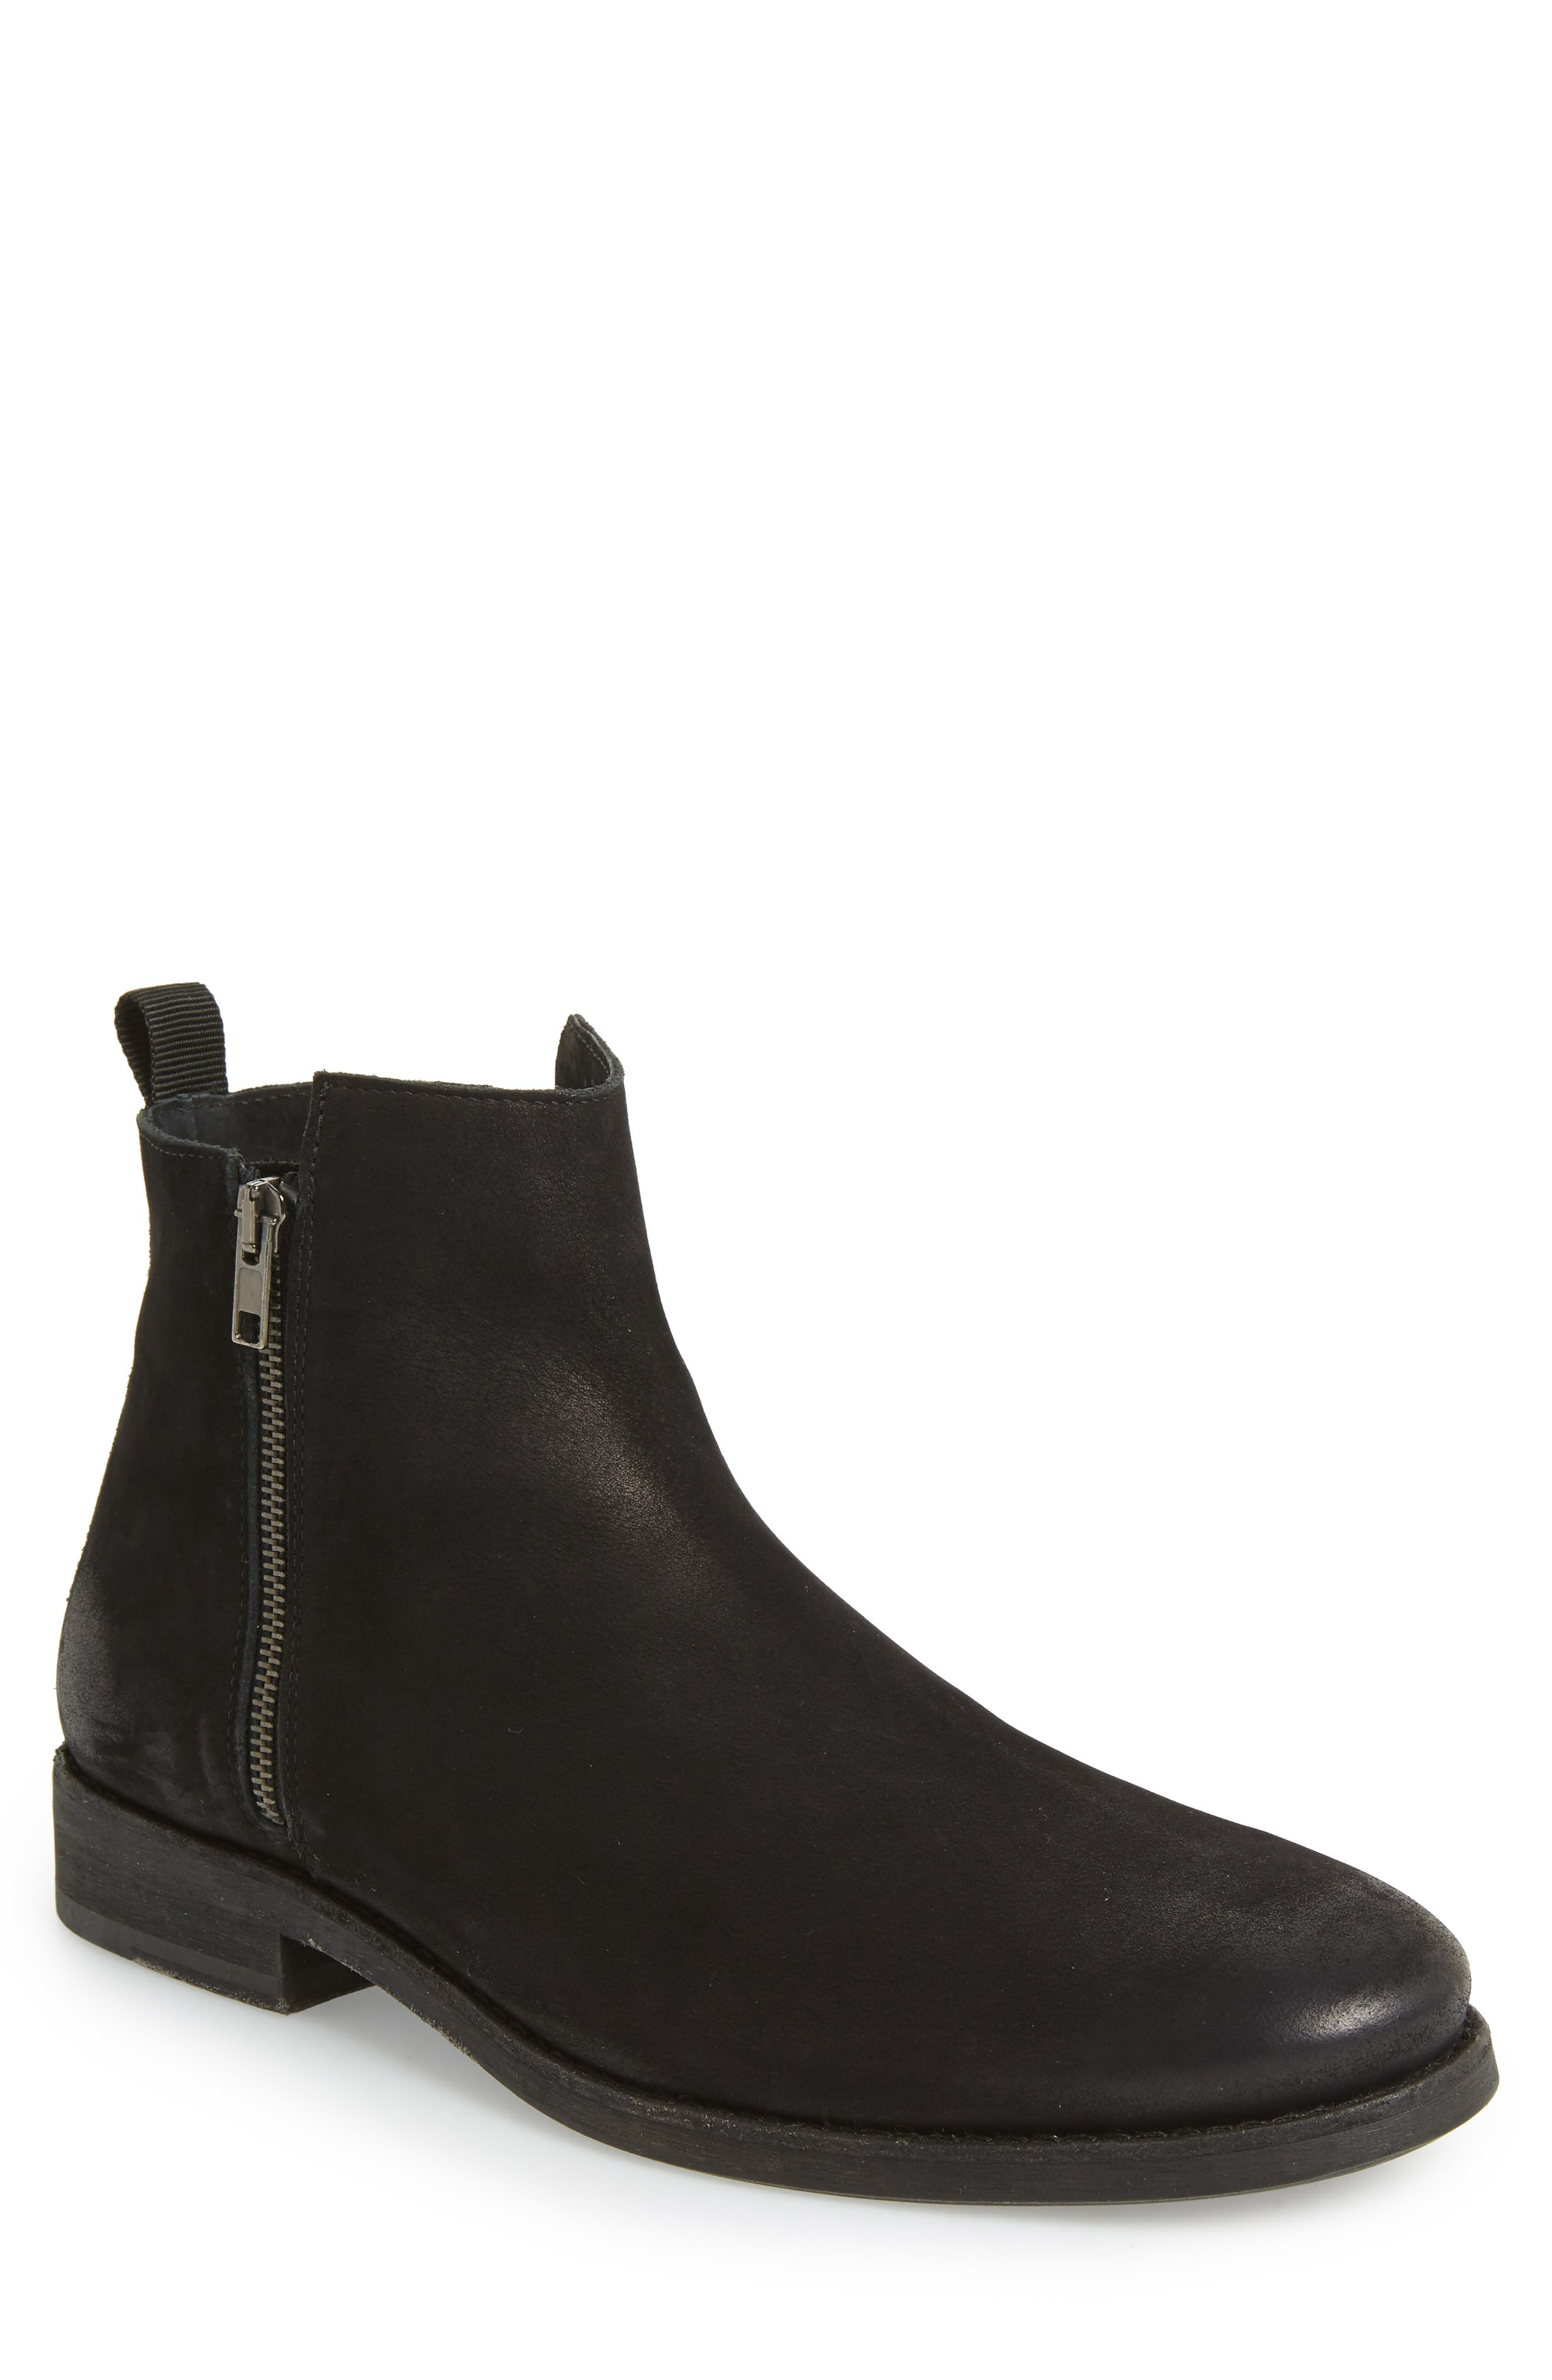 SUPPLY LAB Vance Double Zipper Boot in Black Leather